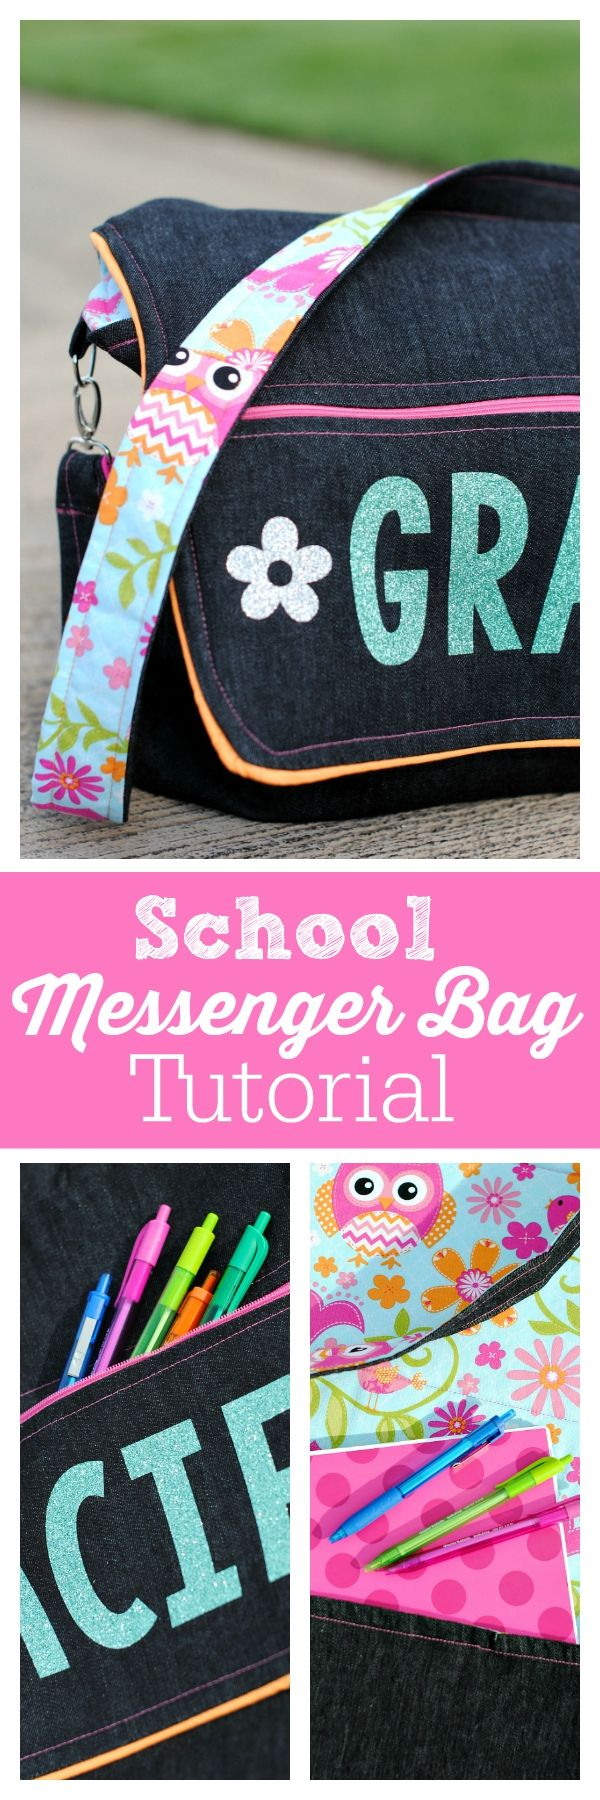 Messenger Bag Tutorial-Perfect for school!